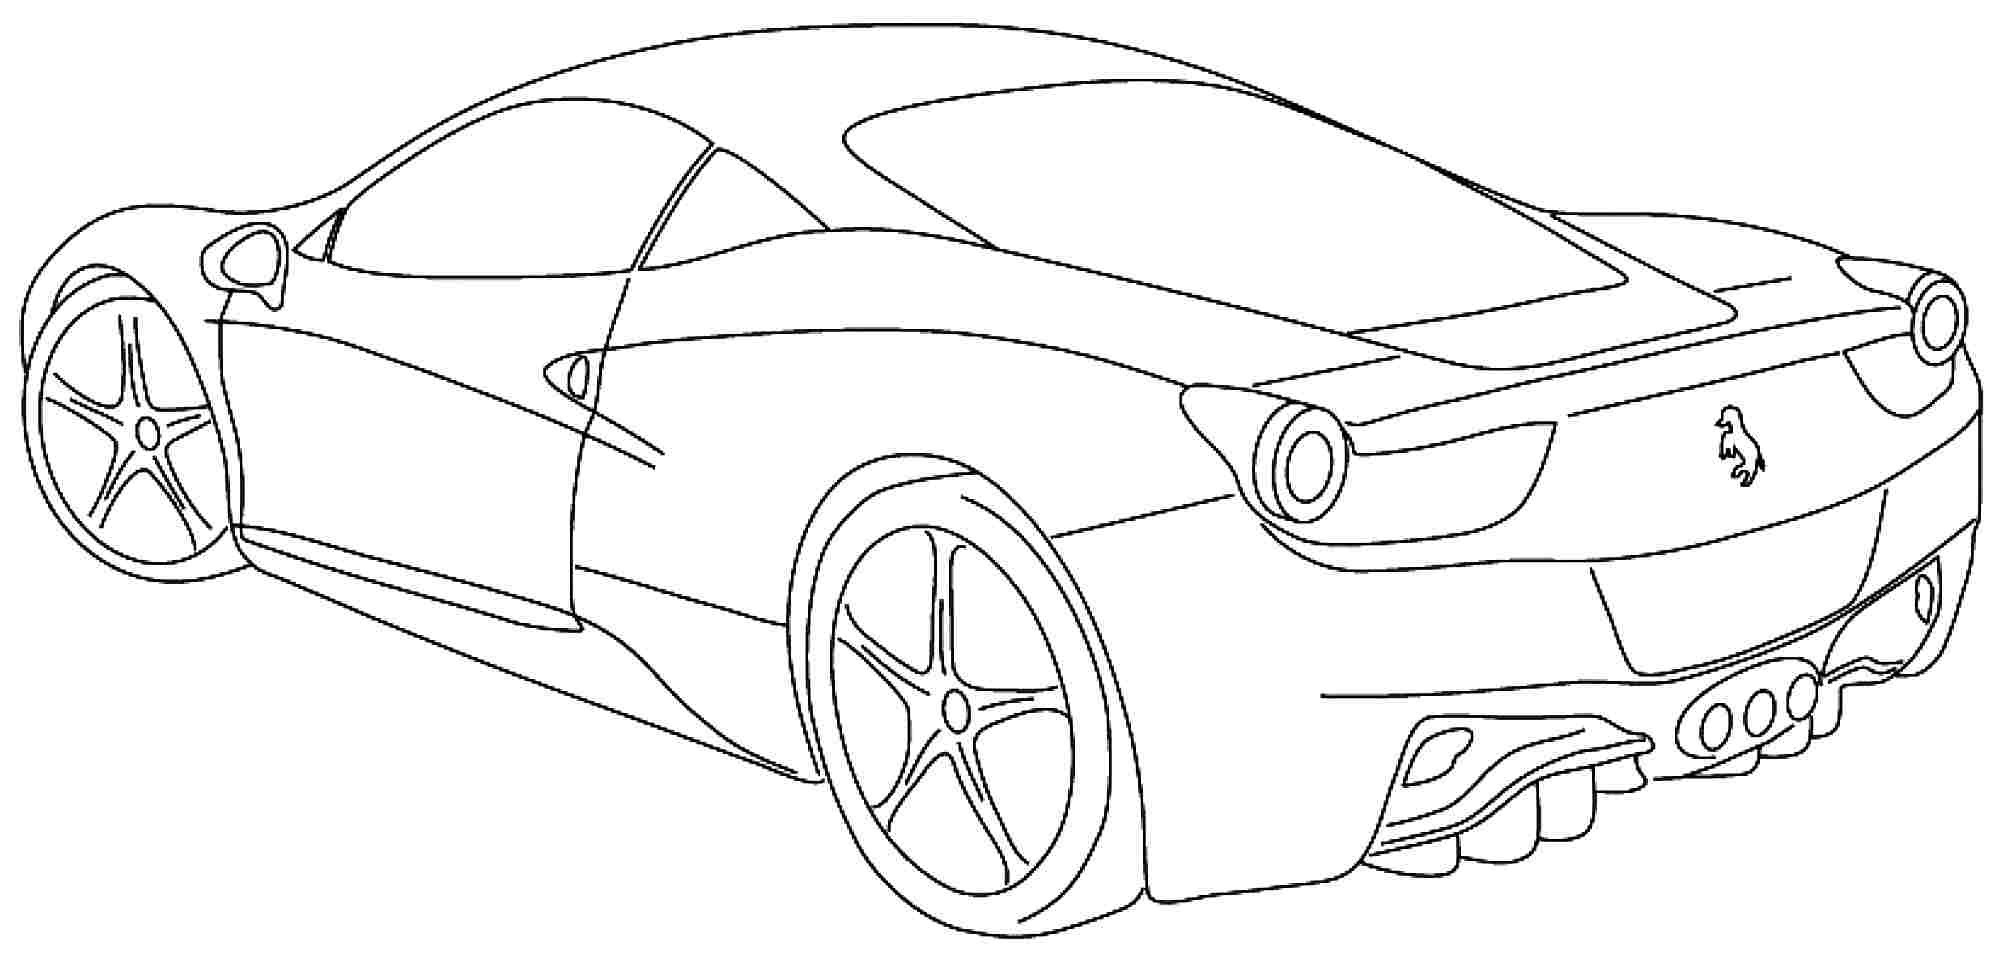 Ferrari coloring pages | Cars coloring pages, Ferrari 458, Ferrari | 962x2000